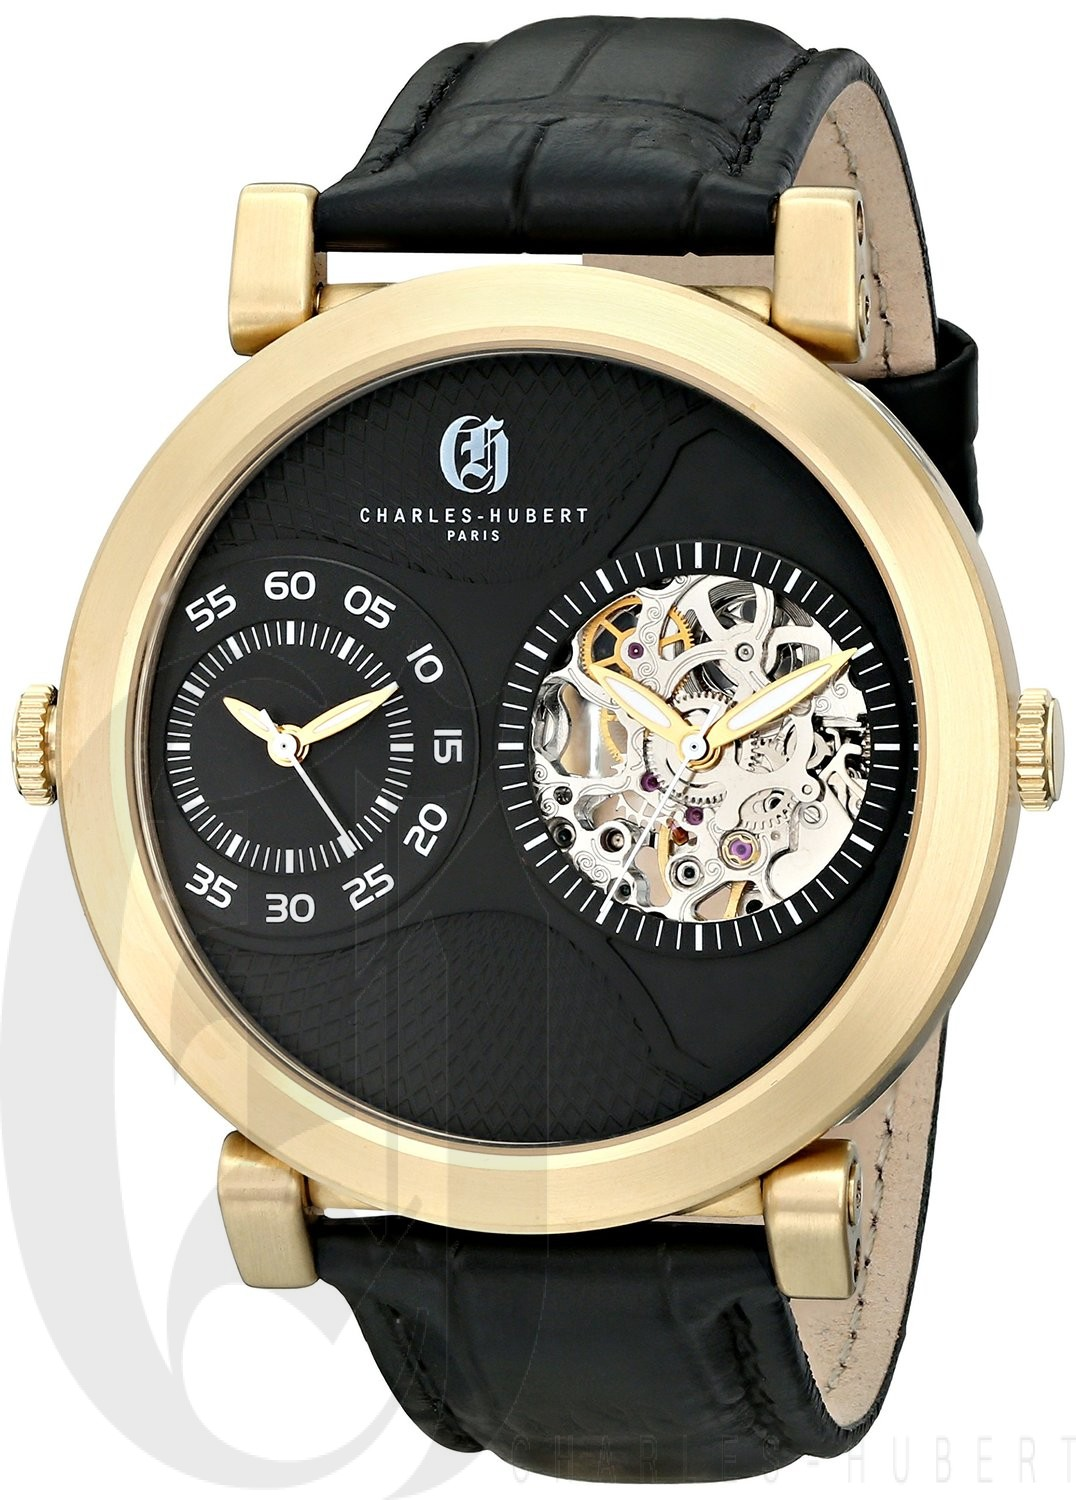 Charles-Hubert Paris Men's Gold-Plated Stainless Steel Dual Time Mechanical and Quartz Watch